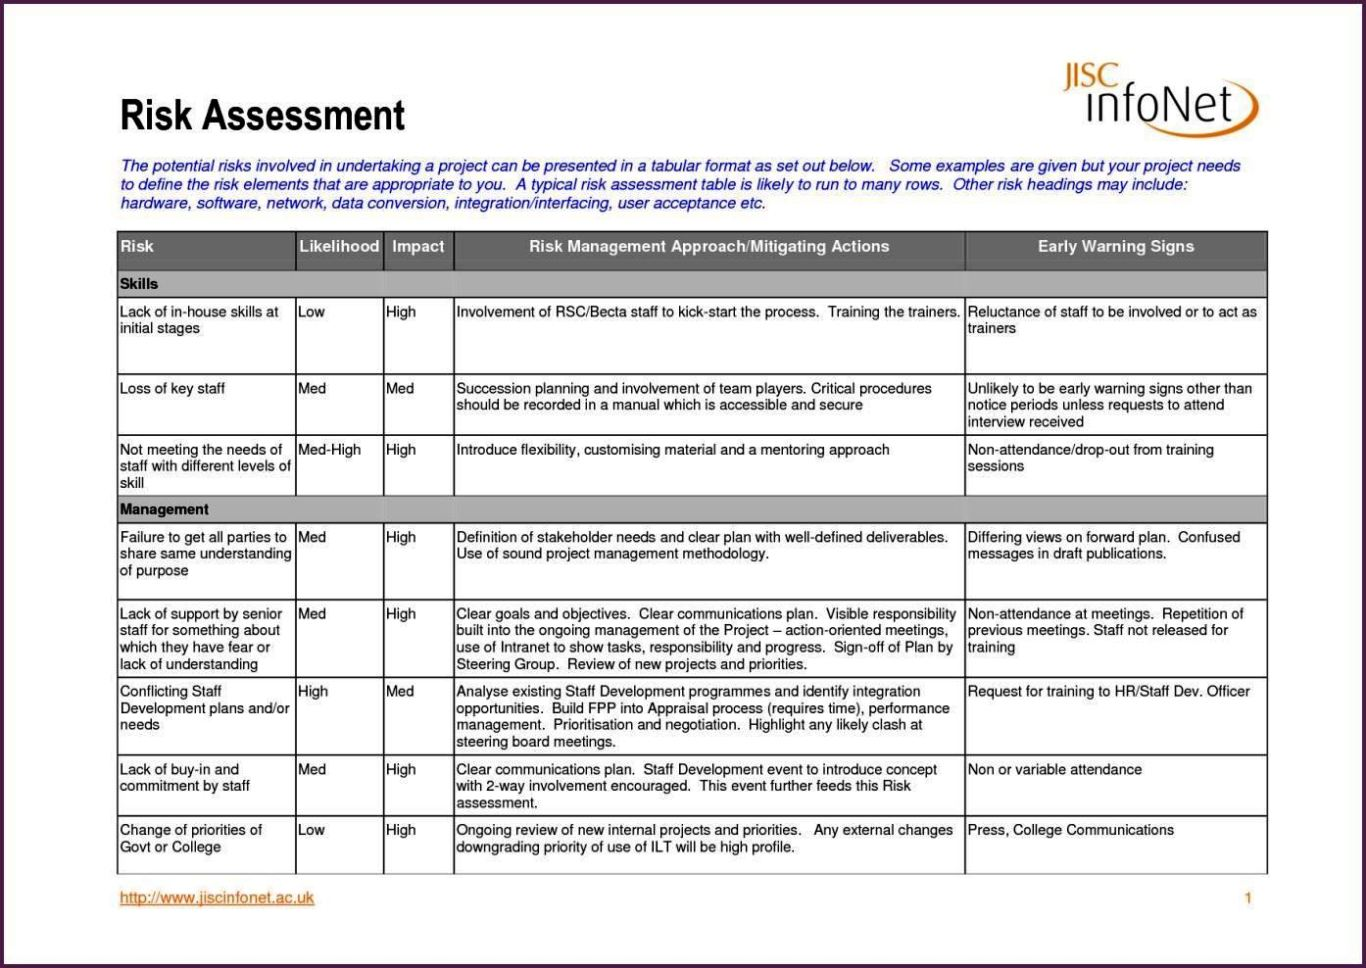 Manufacturing risk assessment template sampletemplatess for Outsourcing risk assessment template